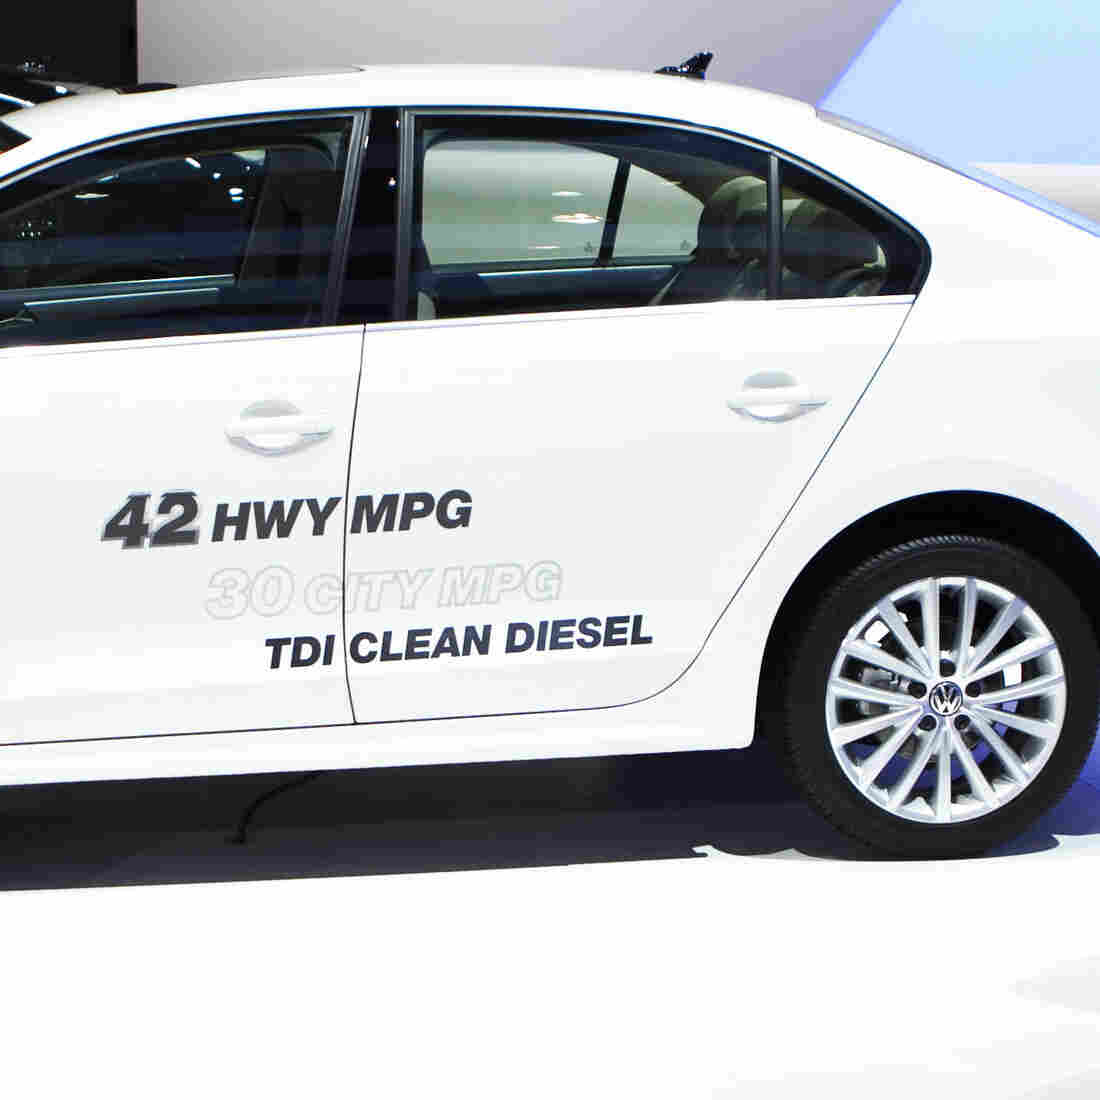 Volkswagen Used 'Defeat Device' To Skirt Emissions Rules, EPA Says